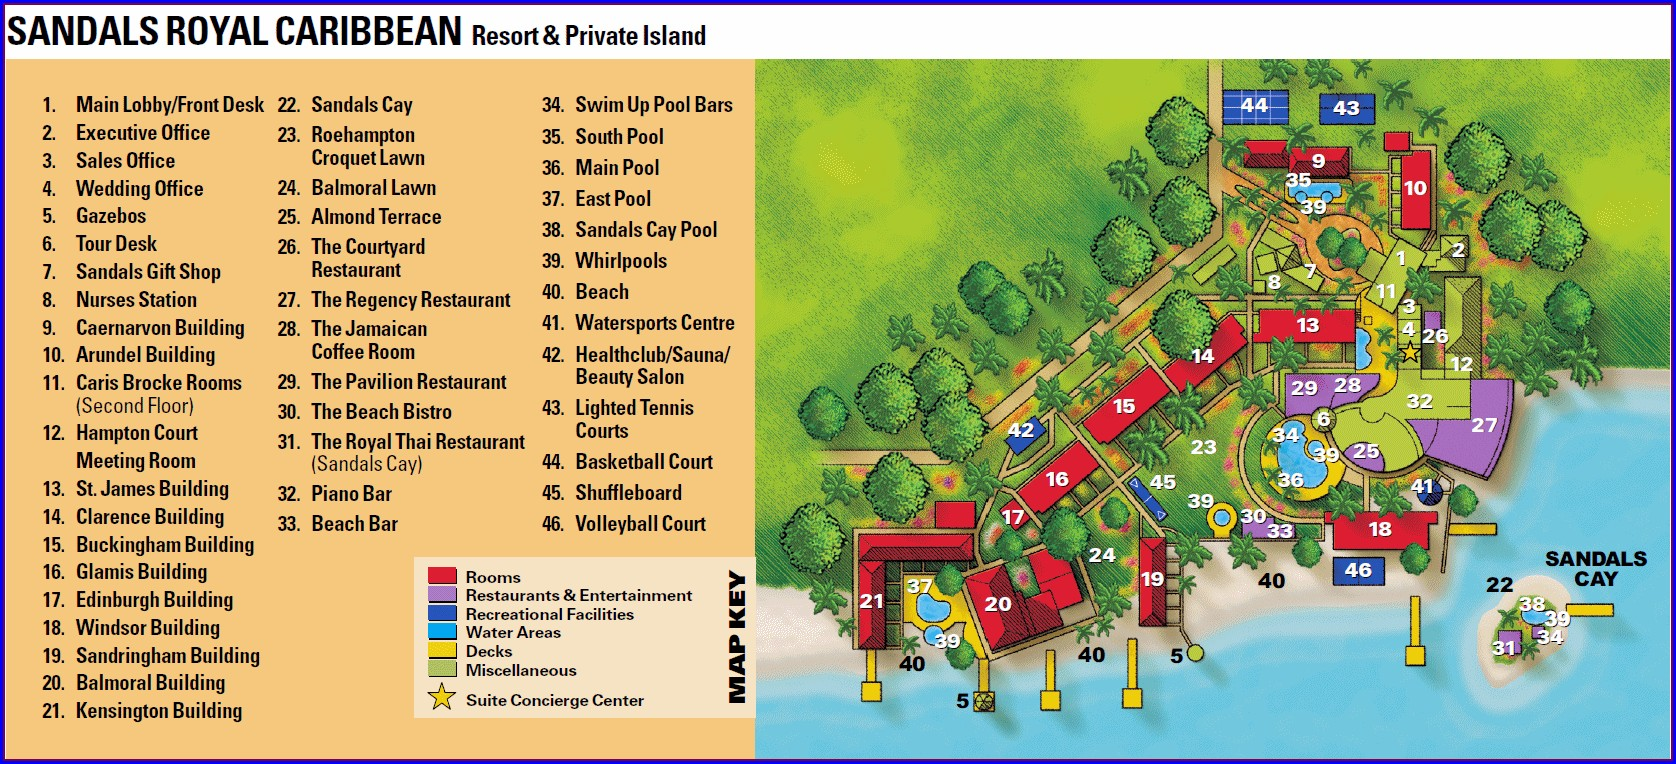 Sandals Royal Caribbean Resort Map